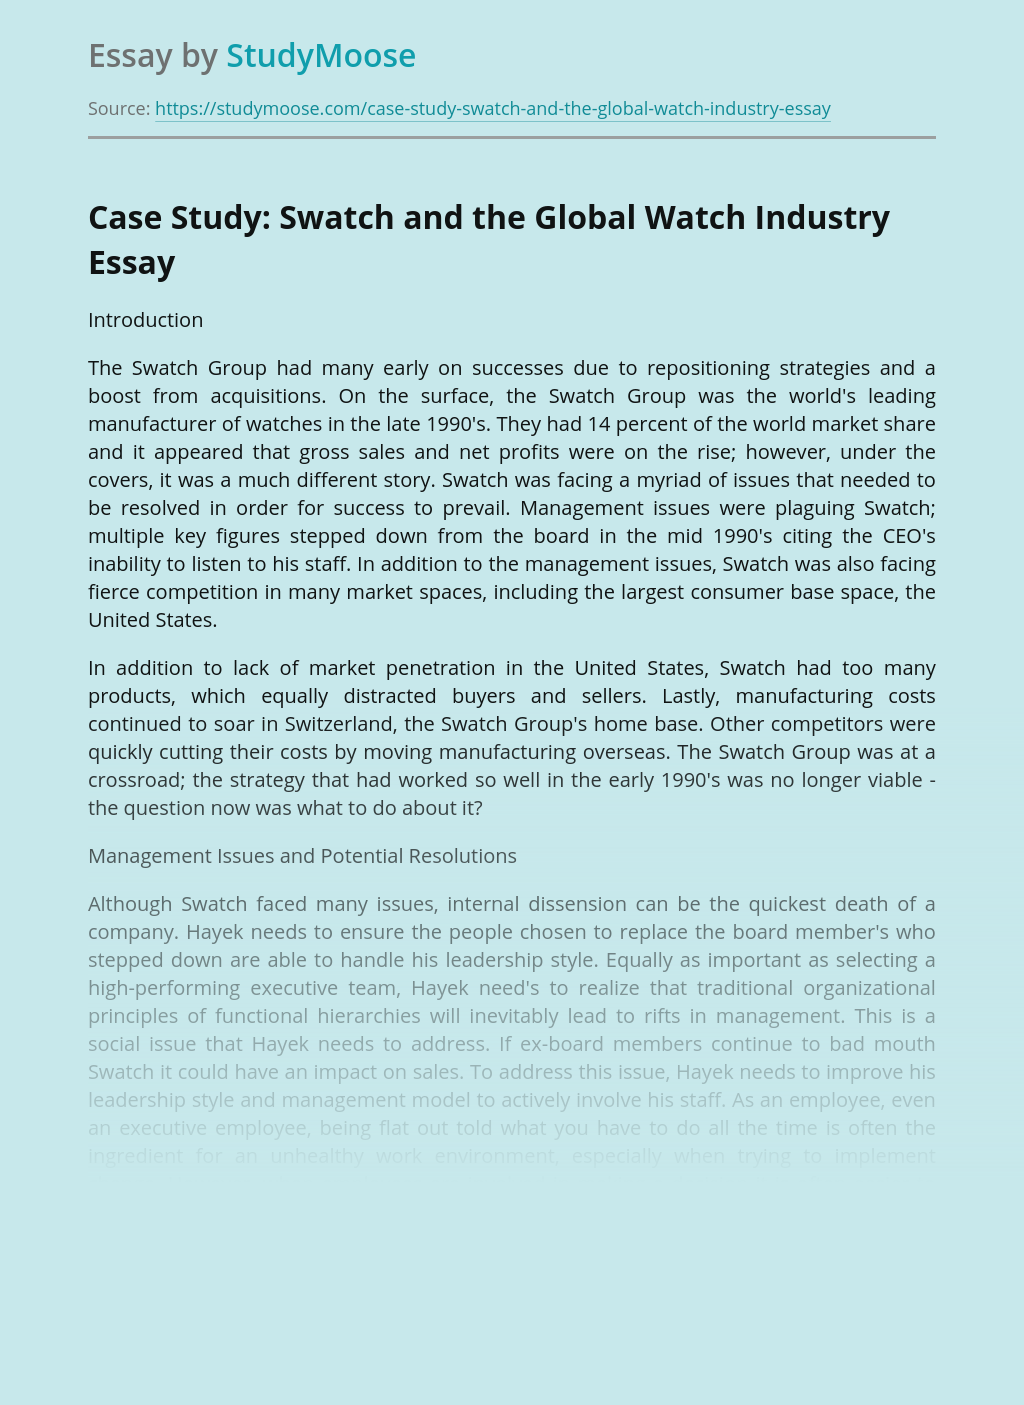 Case Study: Swatch and the Global Watch Industry